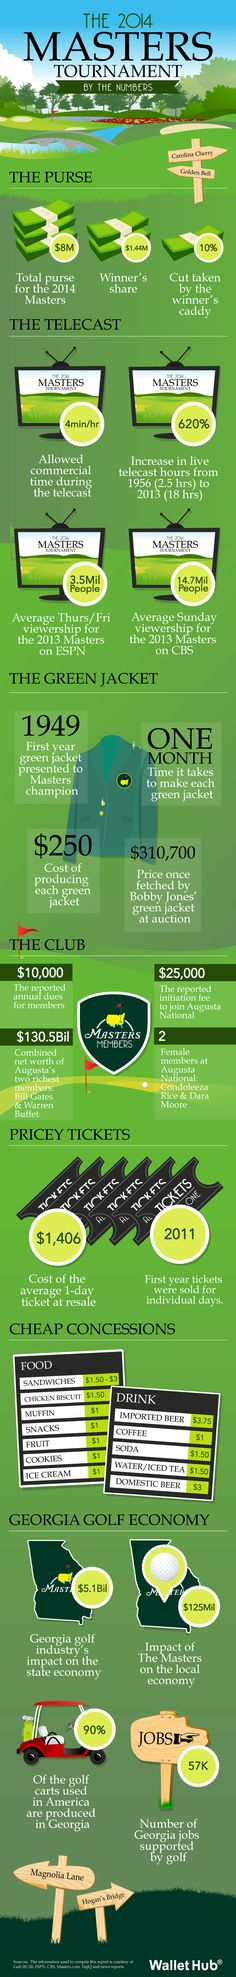 Infographic: The 2014 Masters Tournament By The Numbers